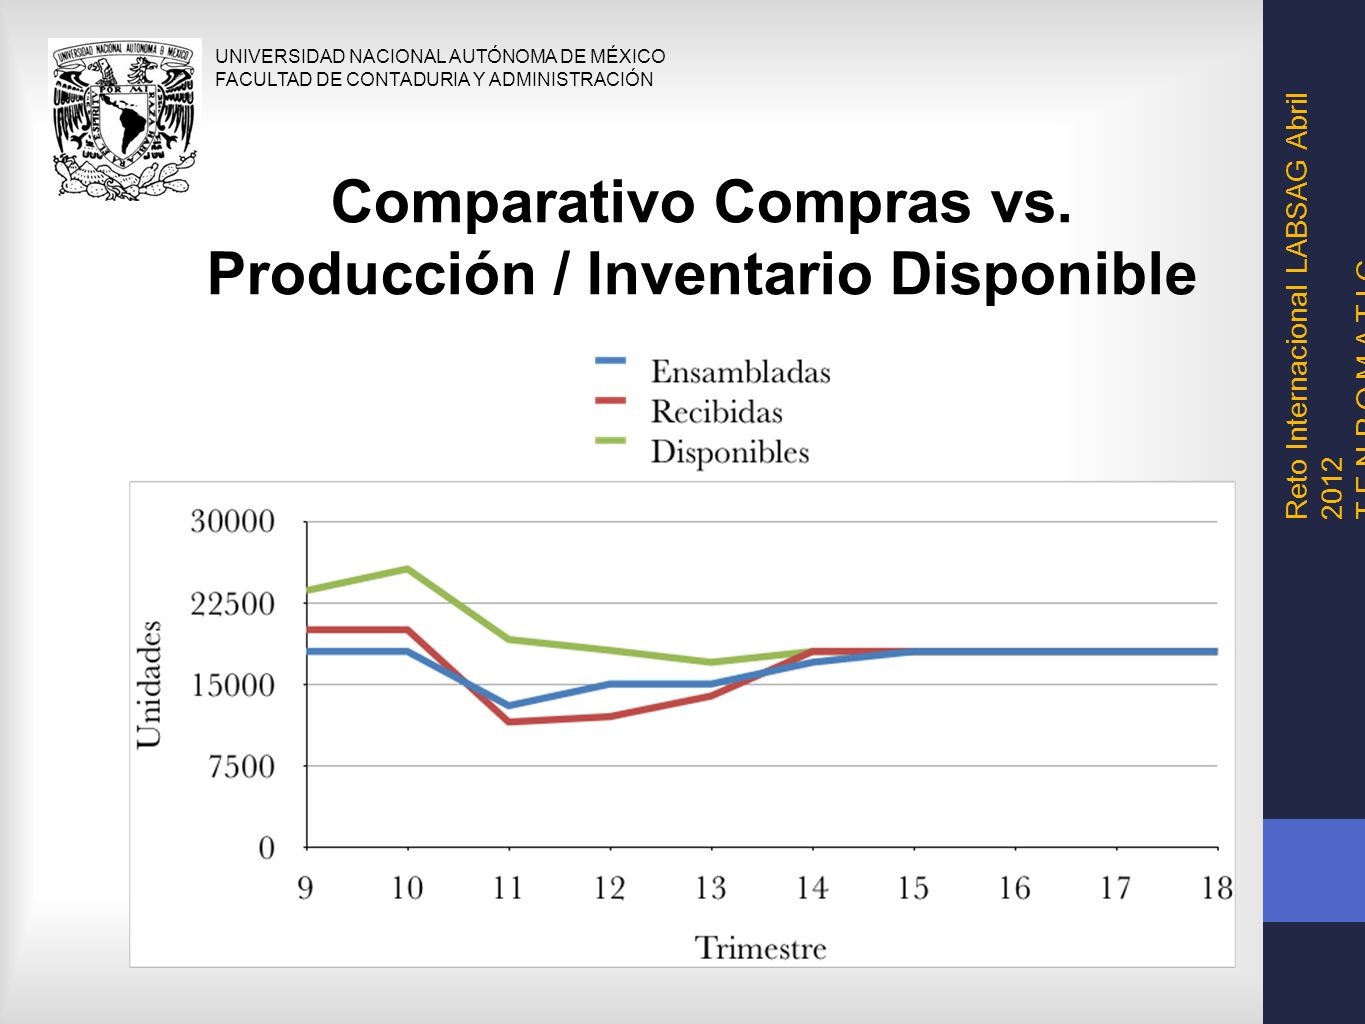 Comparativo Compras vs. Producción / Inventario Disponible